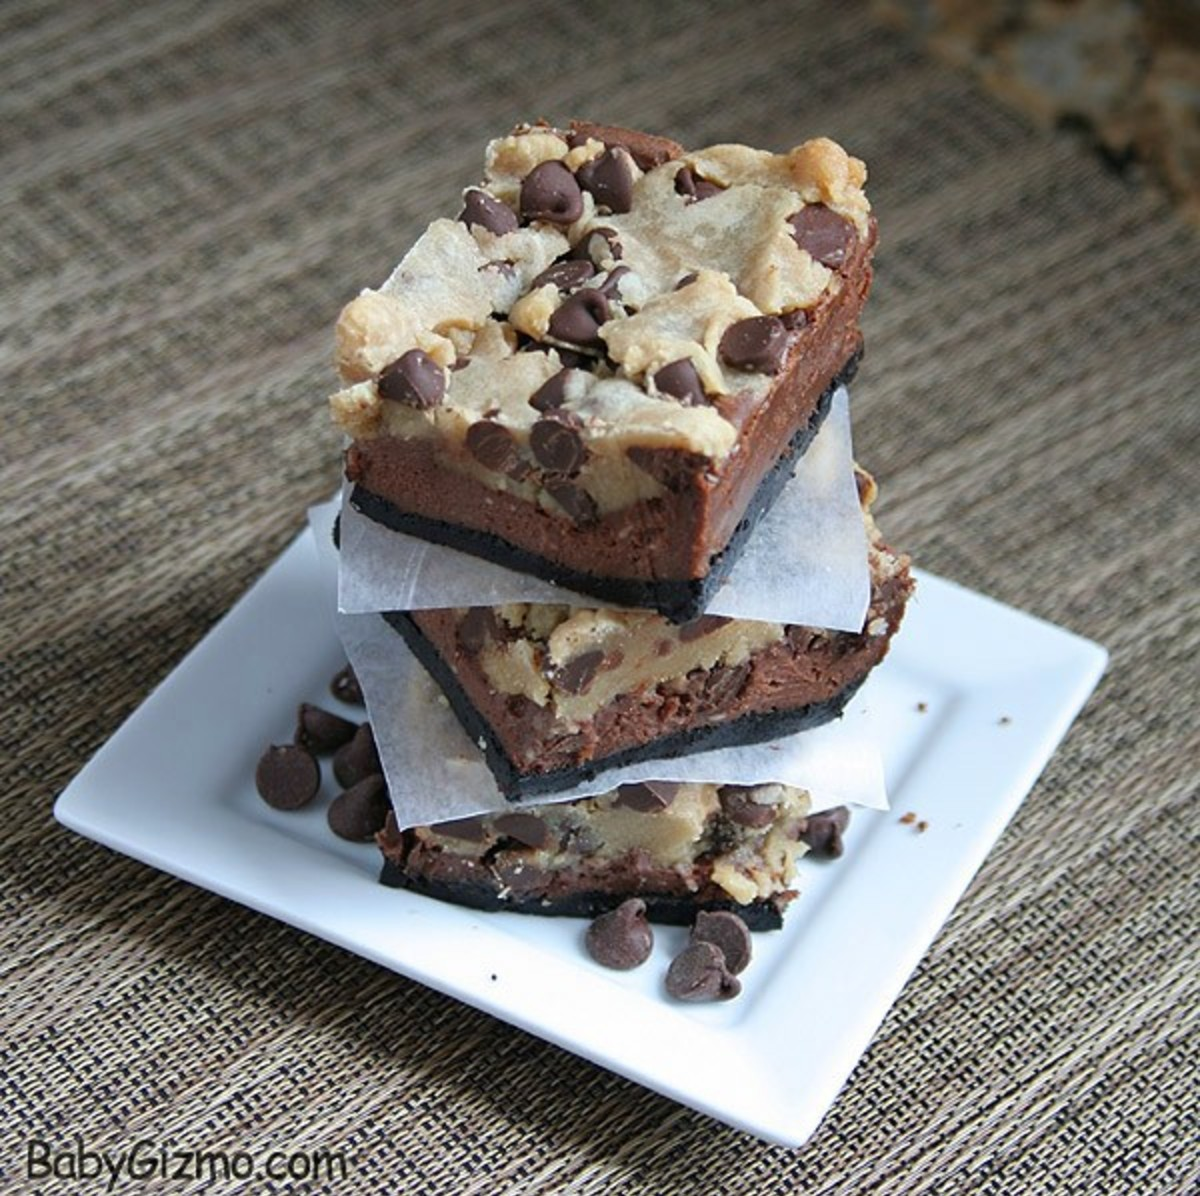 3 Chocolate Chip Chocolate Cheesecake Bars on a white plate